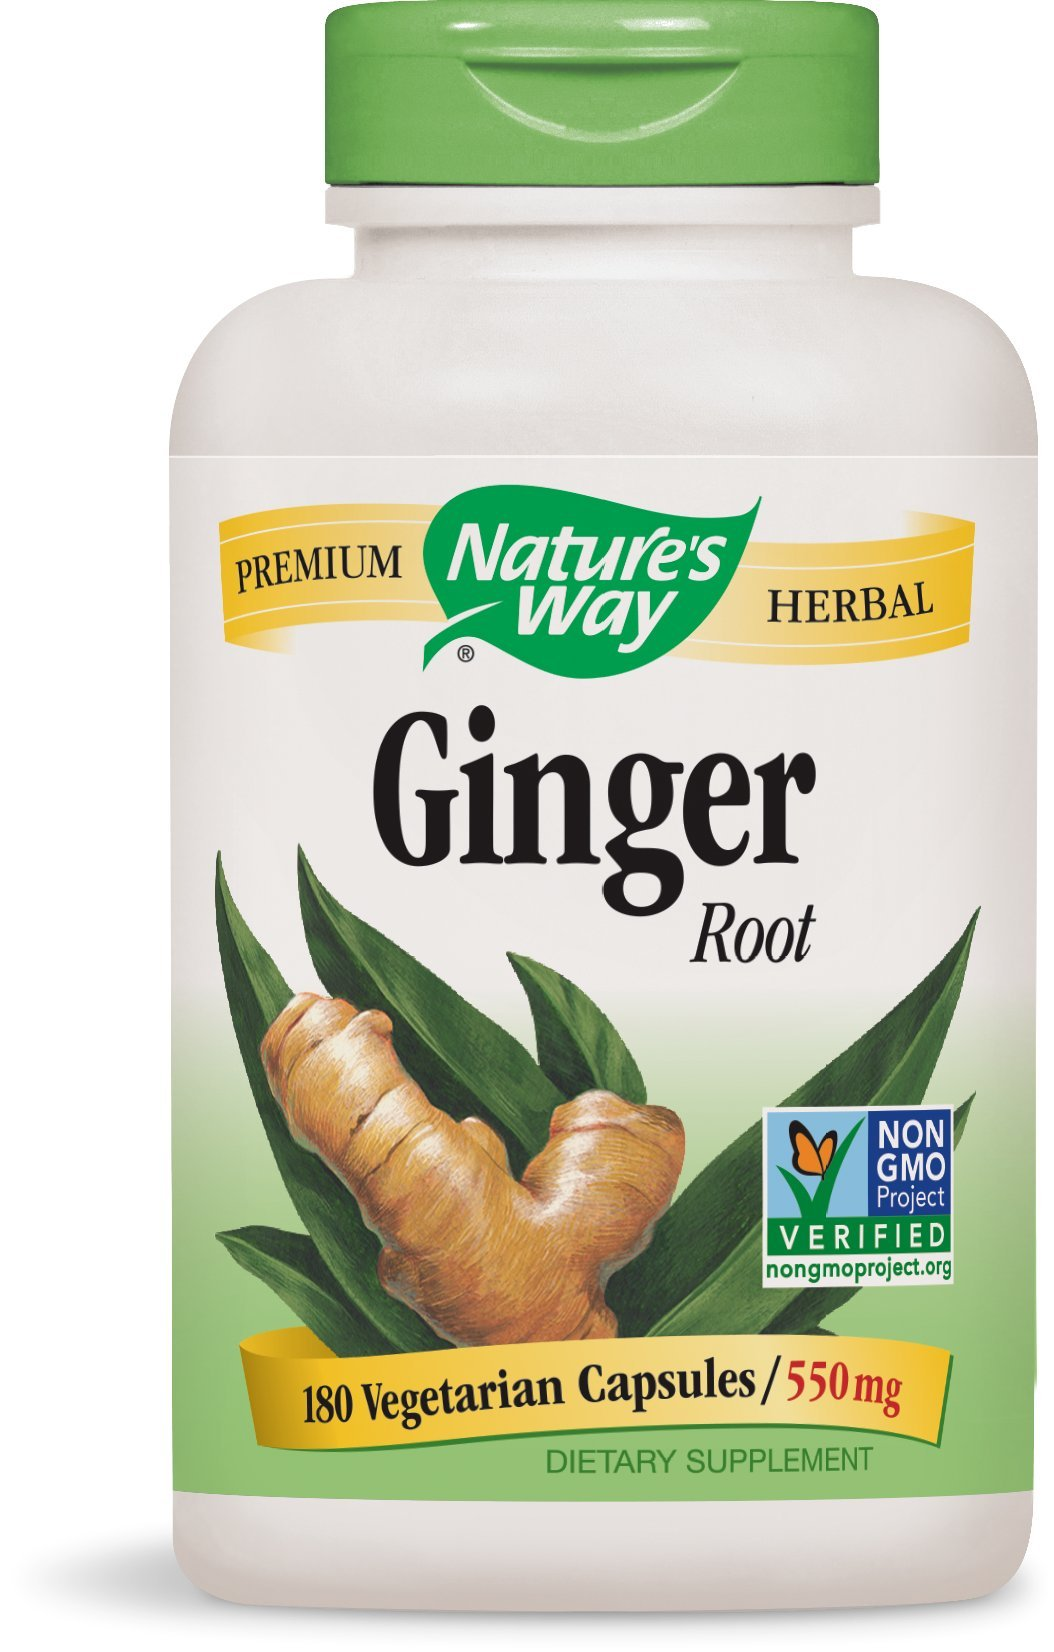 Nature's Way Ginger Root; 1.1 gram Ginger Root per serving; Non-GMO Project Verified; TRU-ID Certified; Gluten-Free; Vegetarian; 180 Capsules (Pack of 2)